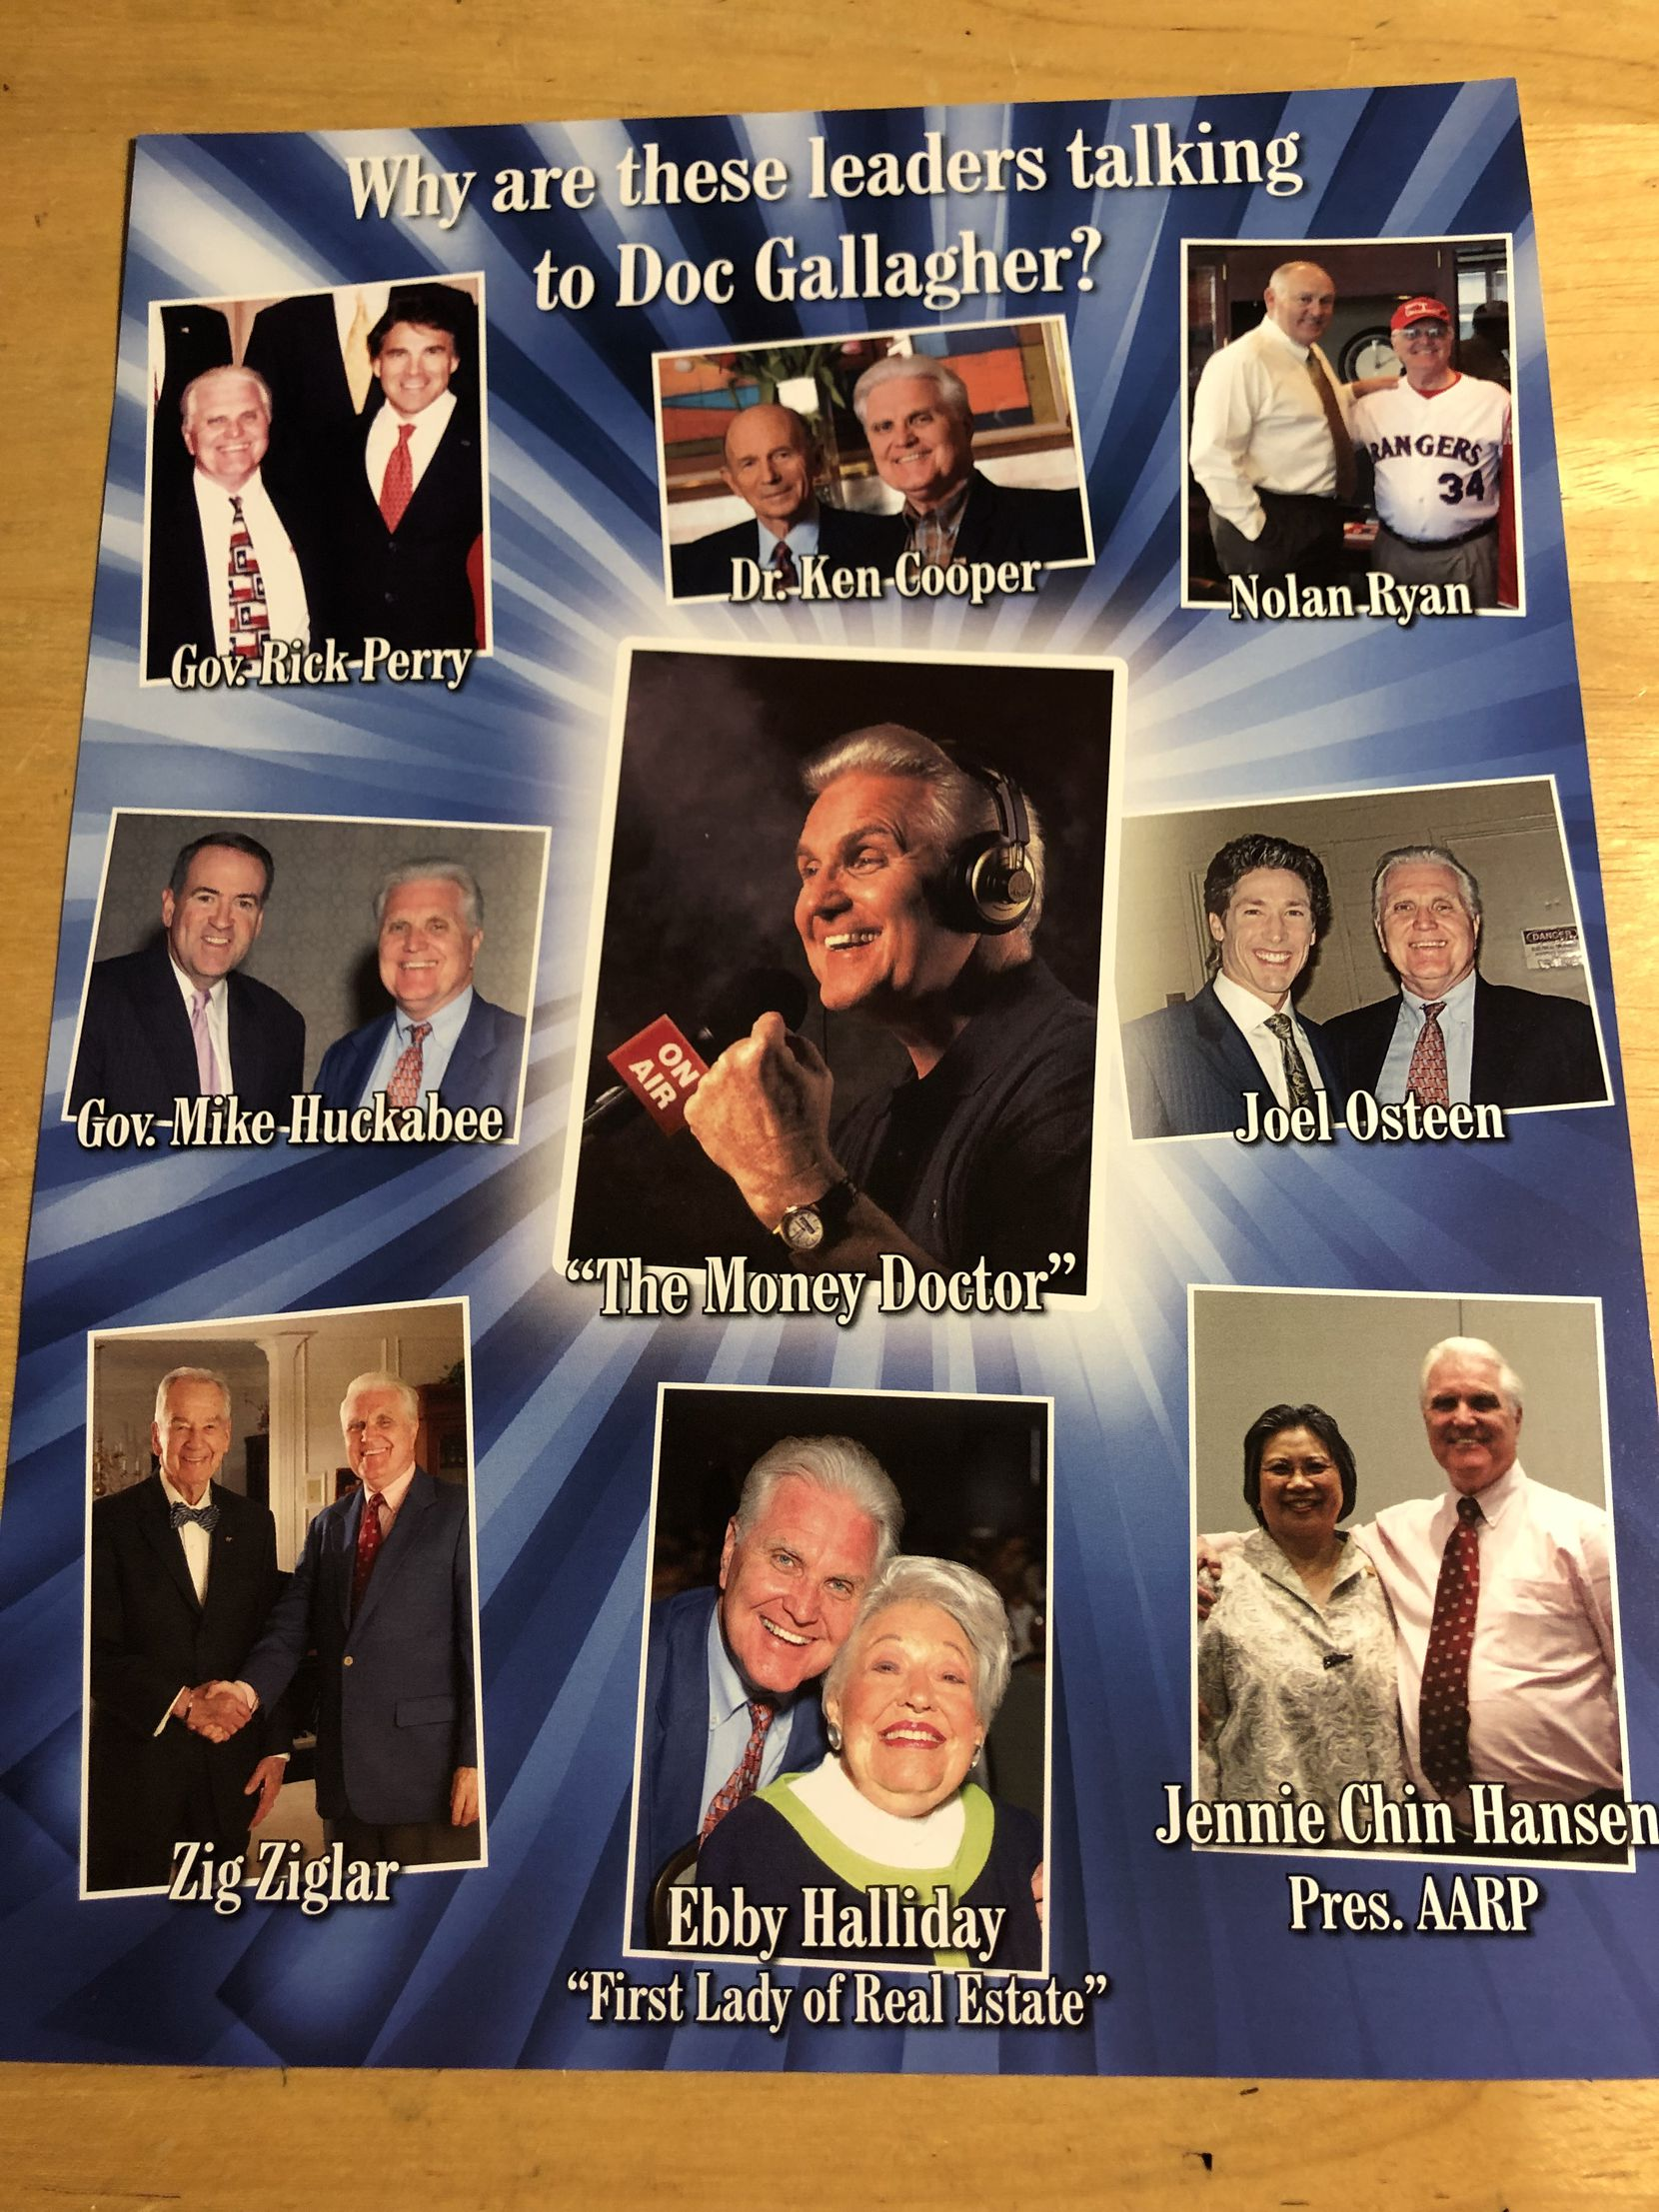 This one-sheet picked up by The Dallas Morning News Watchdog in a 2016 financial seminar shows the accused radio show host photographed with a who's who of notables.